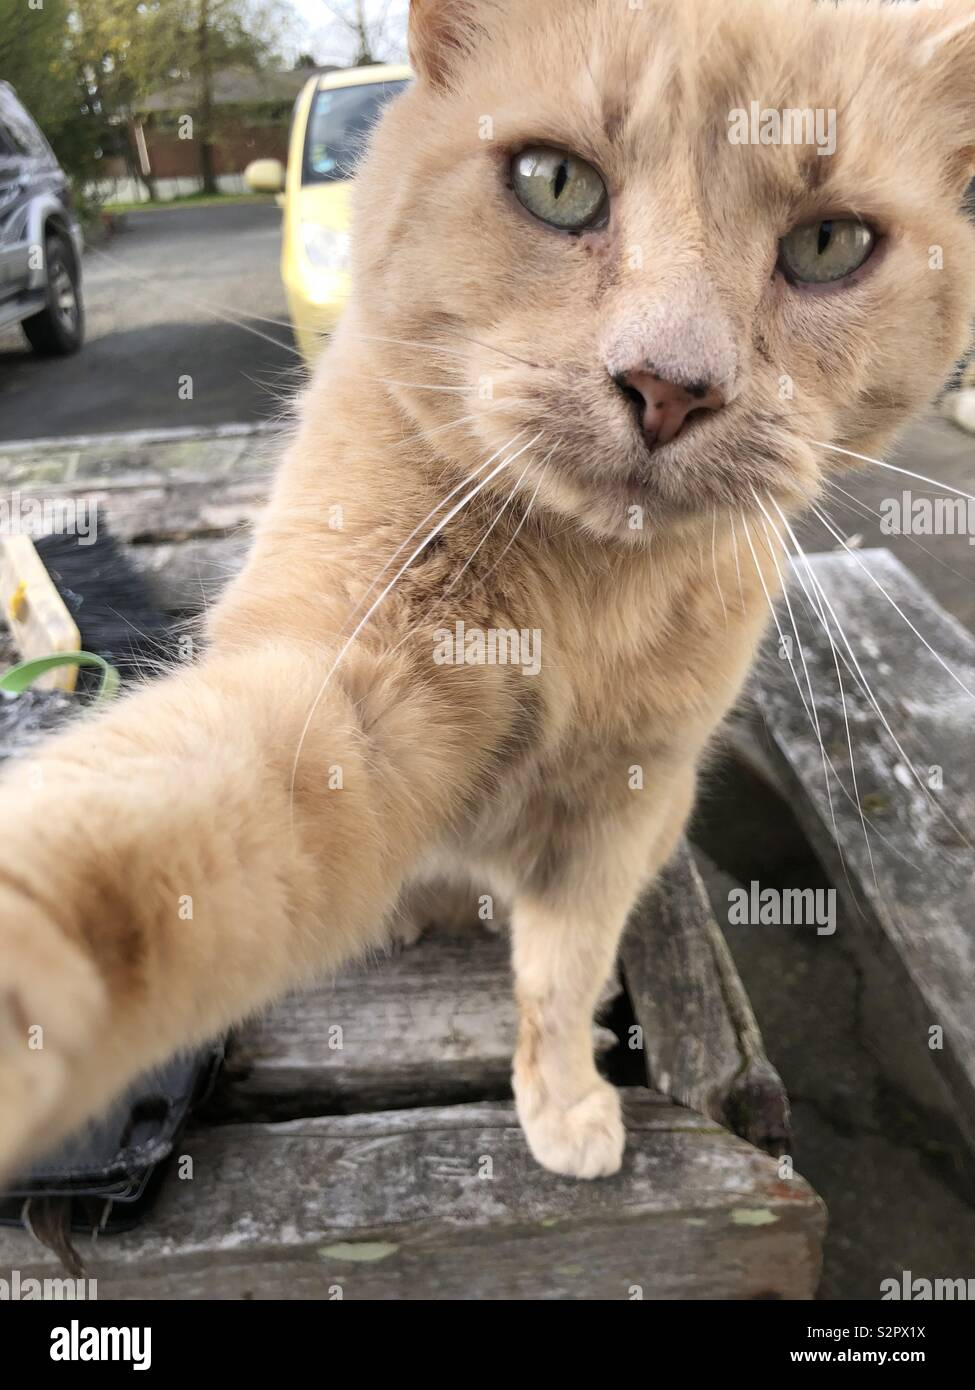 Cat saying hi, by tapping camera - Stock Image